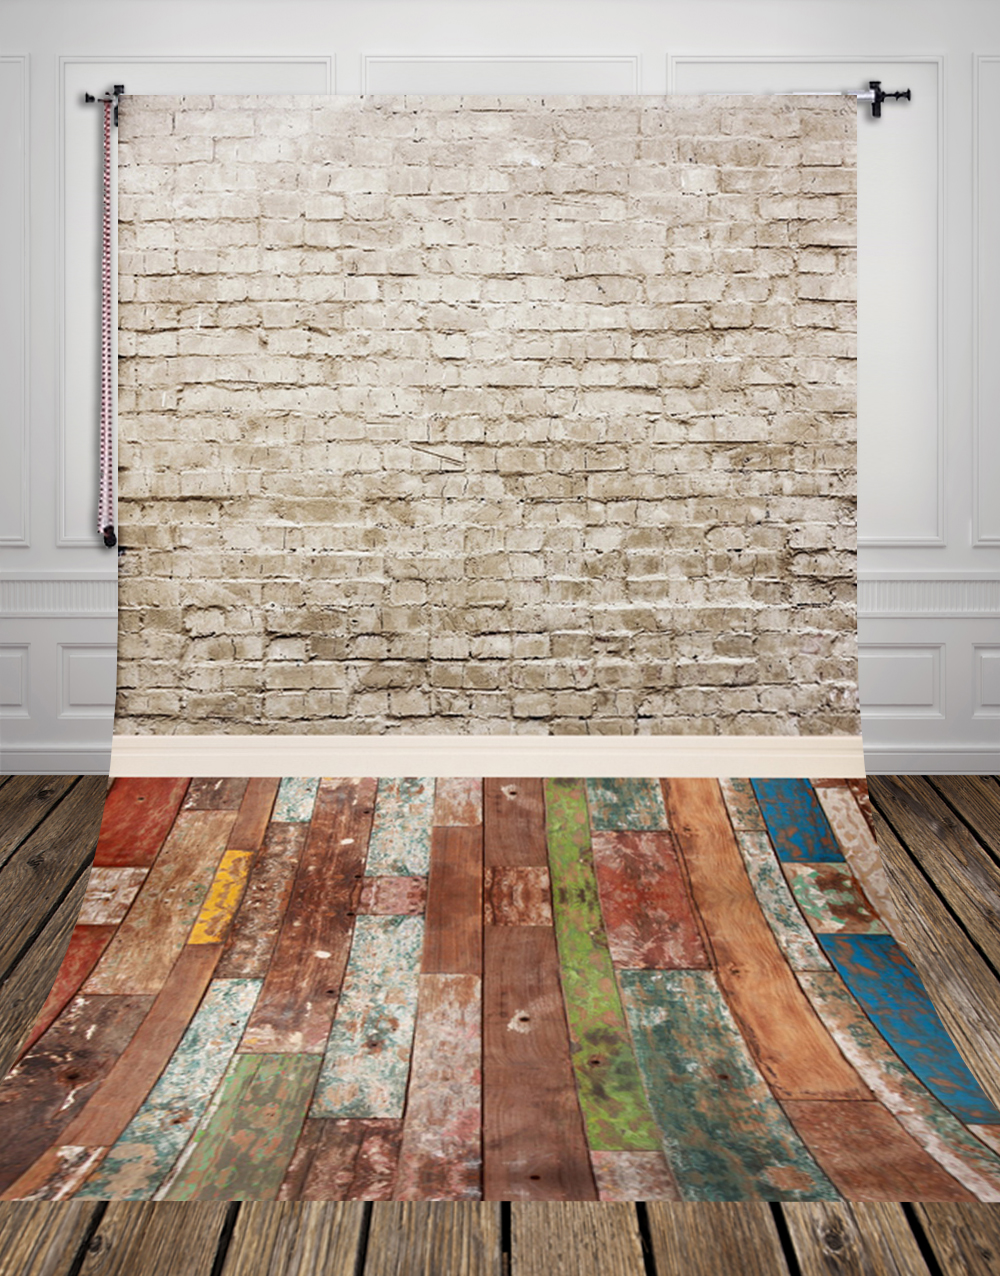 5x10ft(1.5x3m) White brick wall and color wood floor photo studio background backdrop made of  Art fabric for photography D-9694 10ft 20ft romantic wedding backdrop f 894 fabric background idea wood floor digital photography backdrop for picture taking